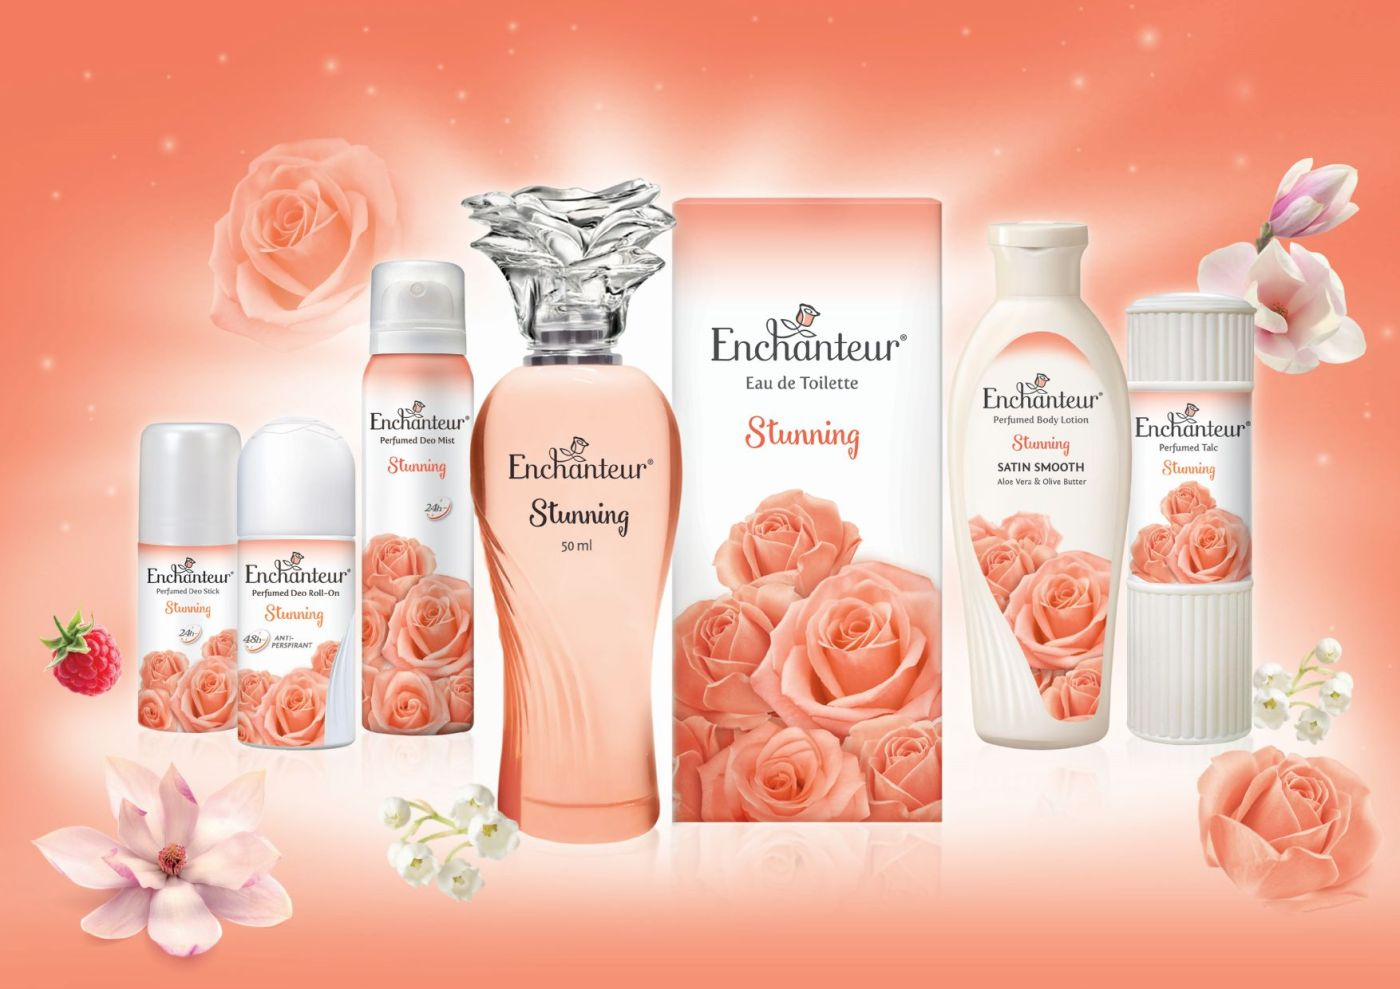 Enchanteur new product